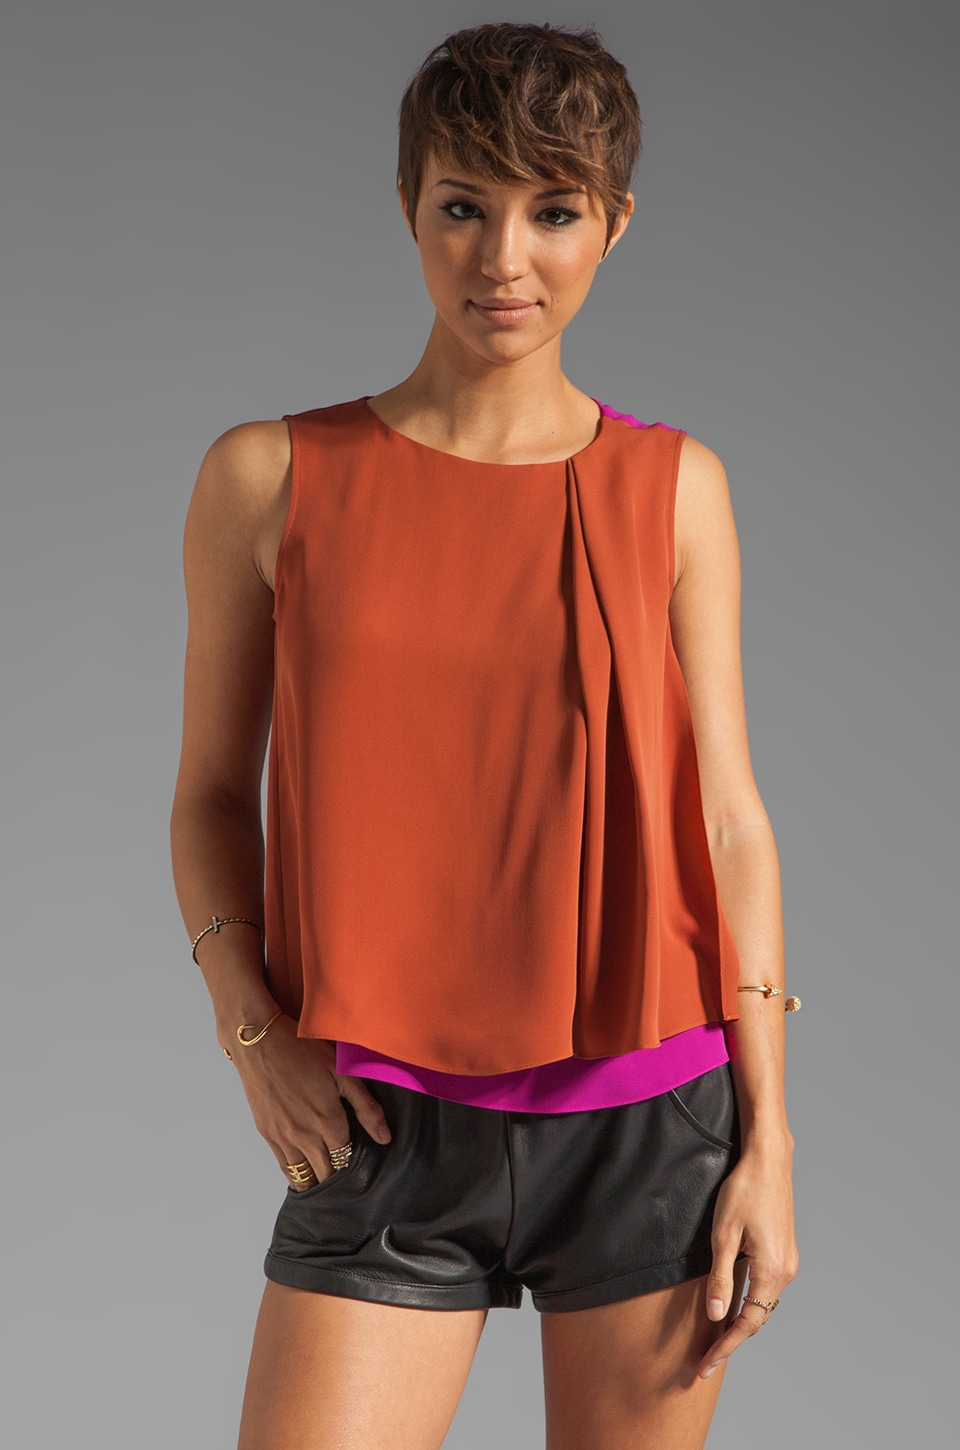 Halston Heritage Sleeveless Boatneck Colorblock Top in Bright Magenta/Space